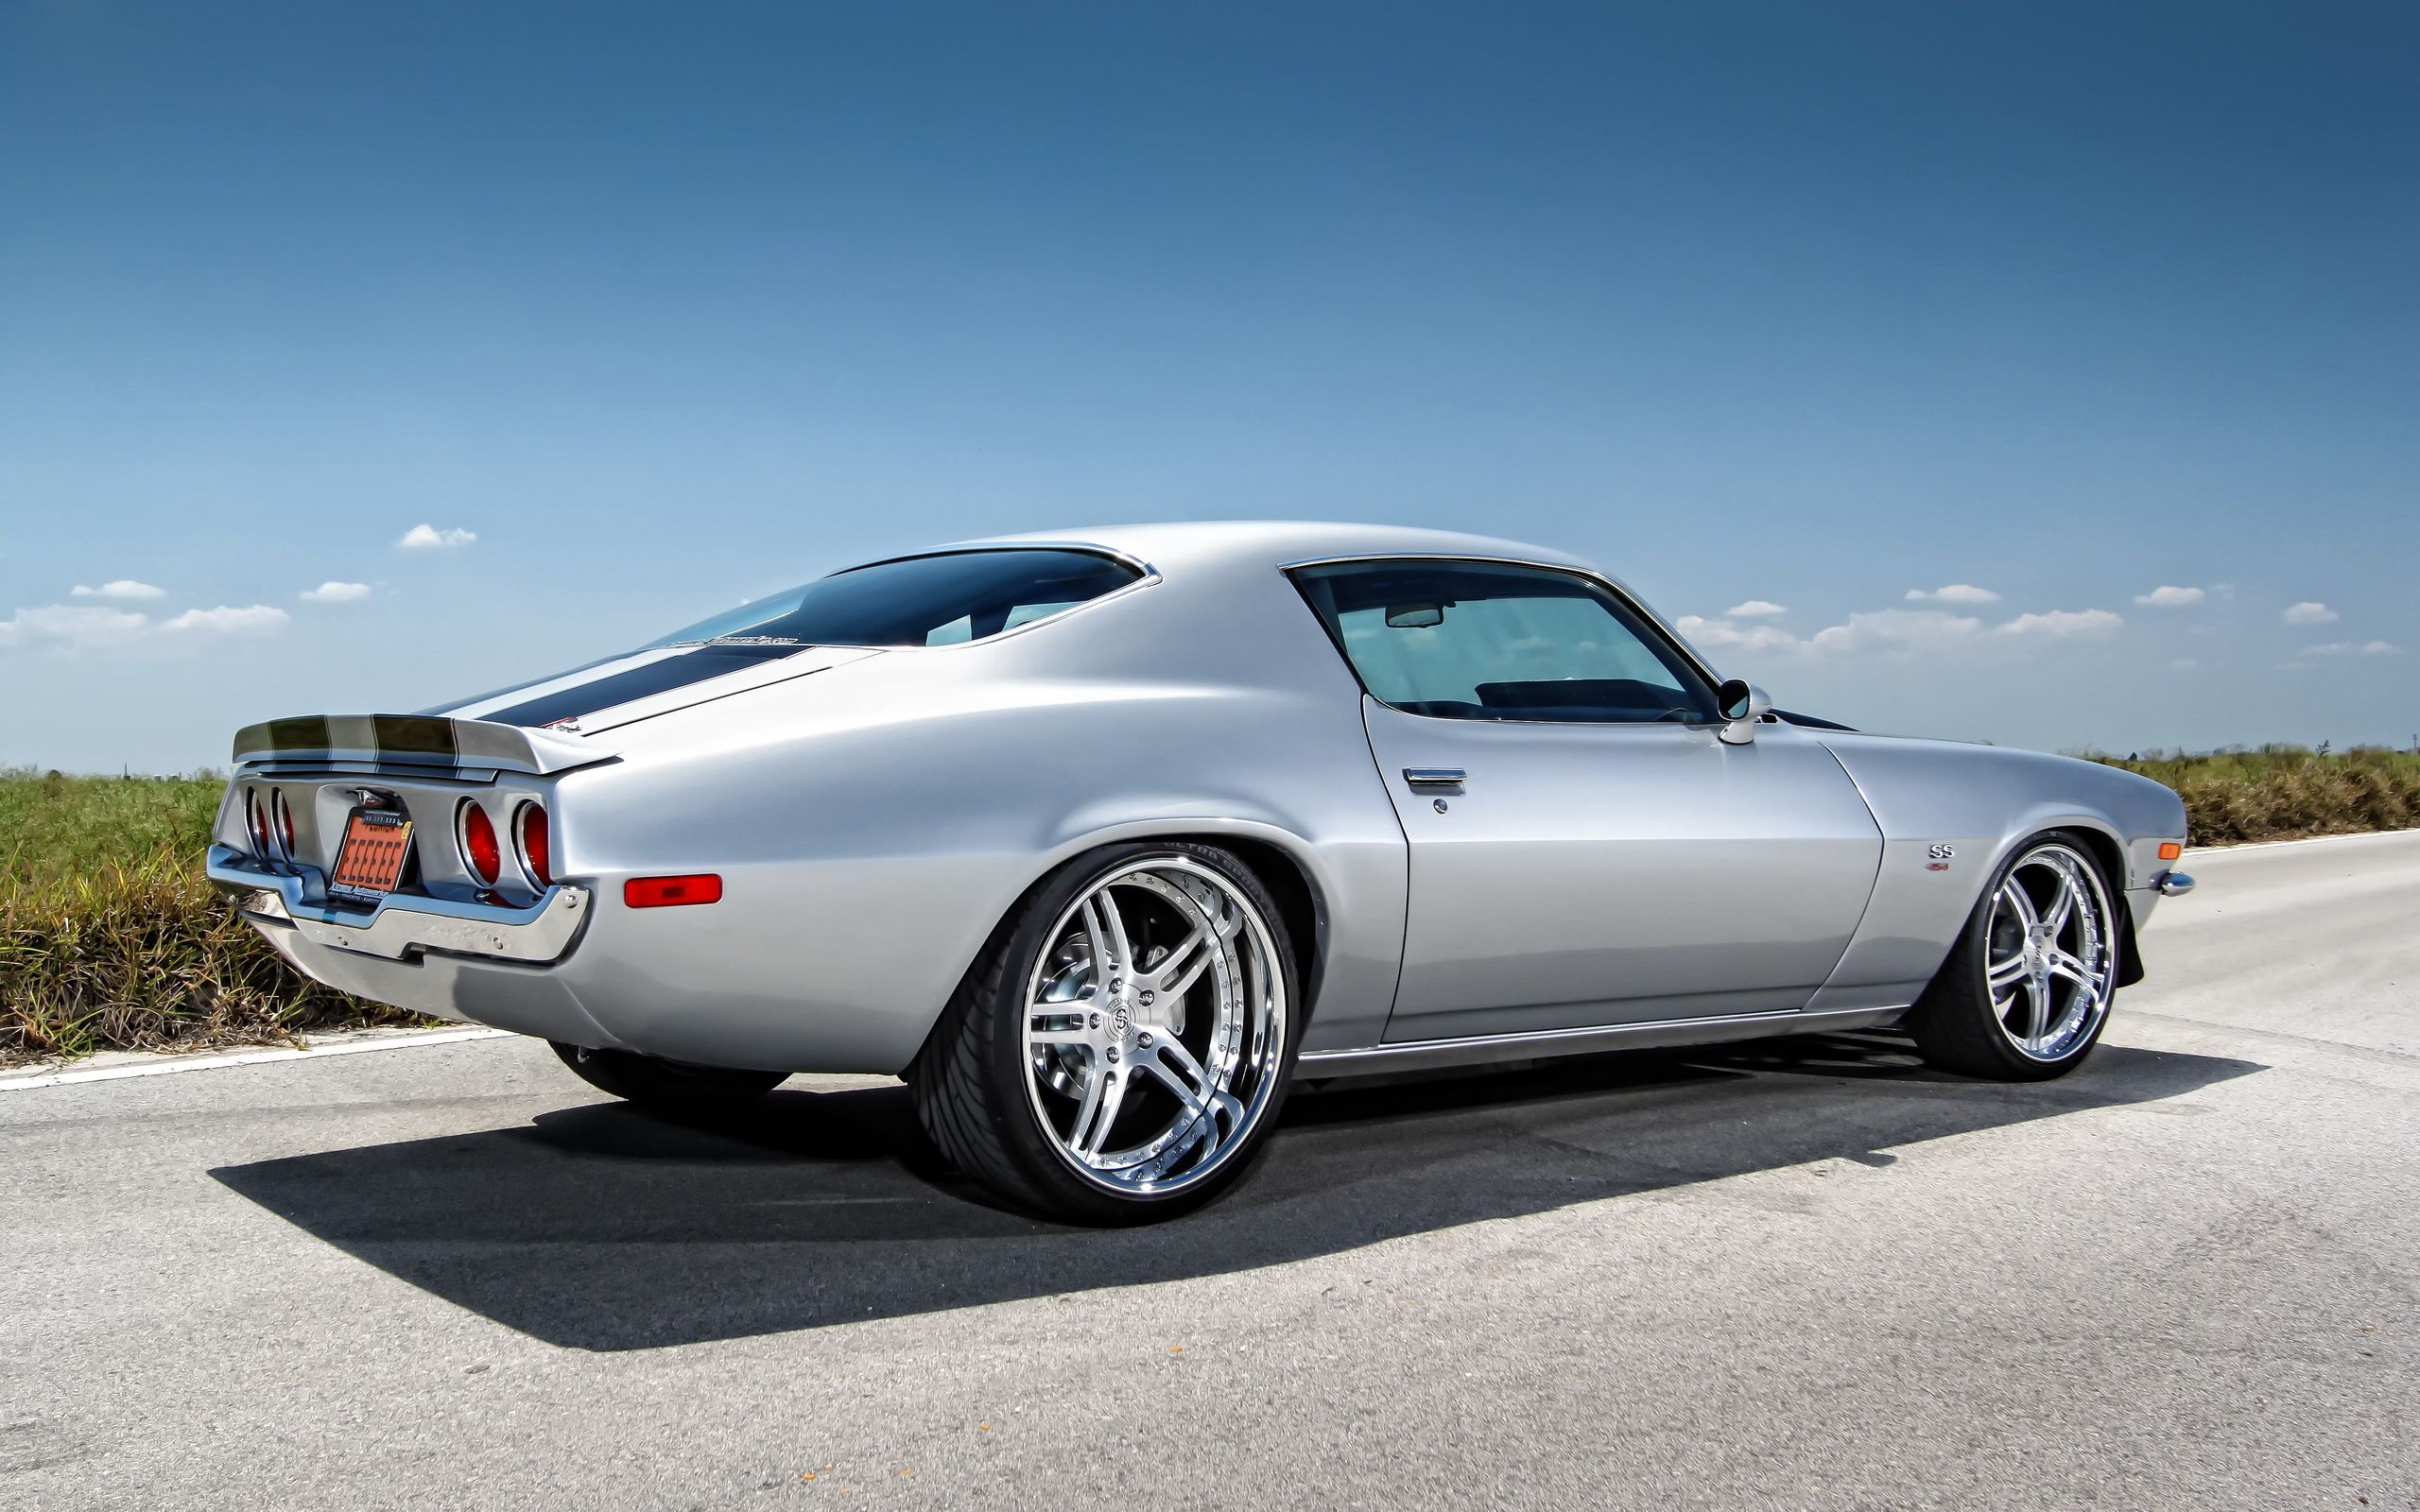 Chevy Muscle Car Wallpaper Chevy Camaro Muscle Car Wallpapers